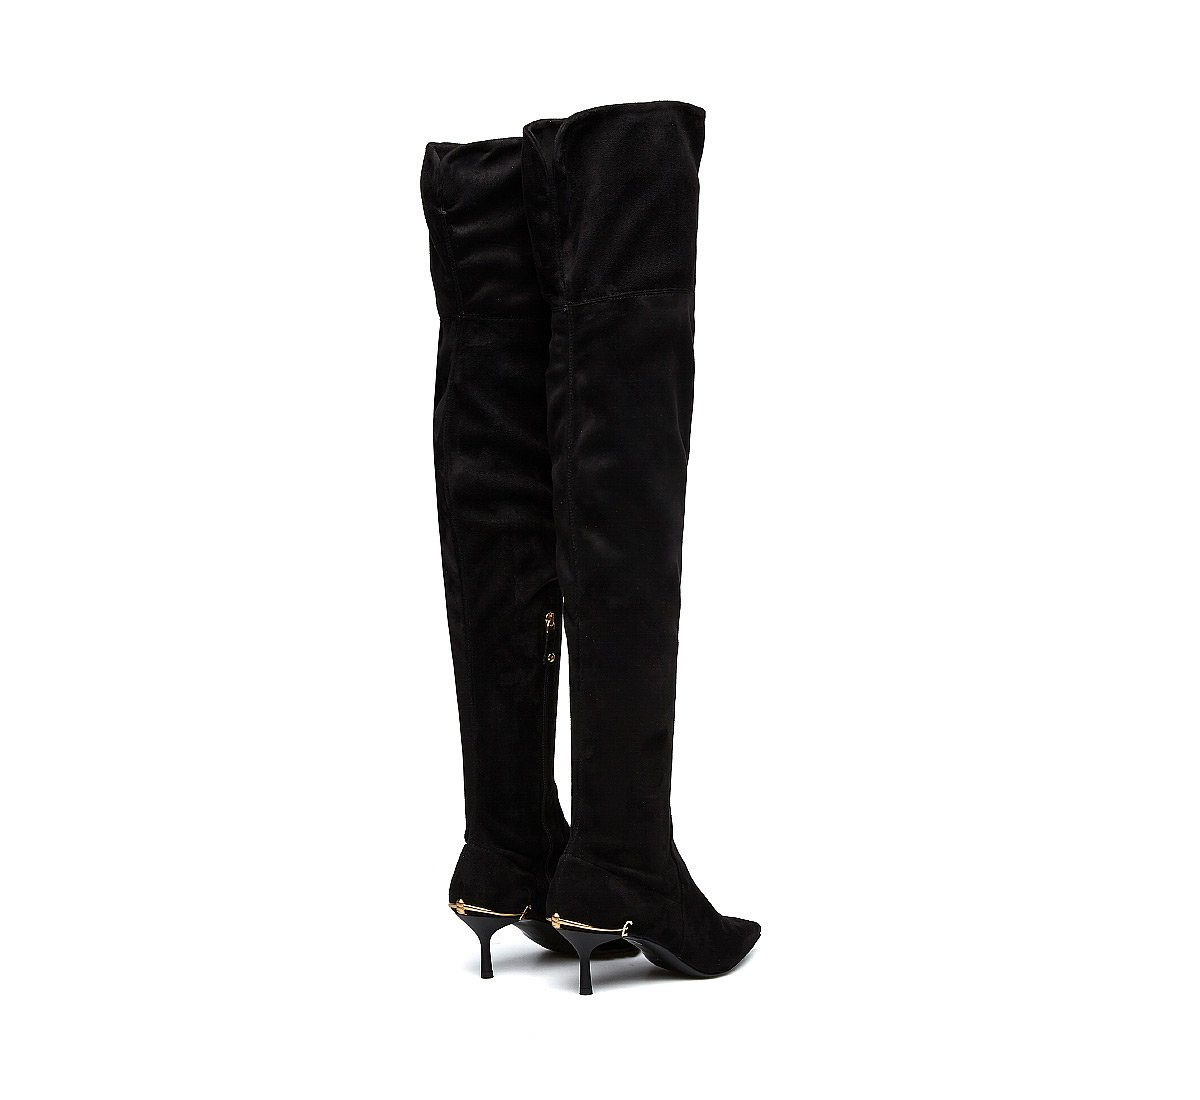 Thigh-high boots in soft suede